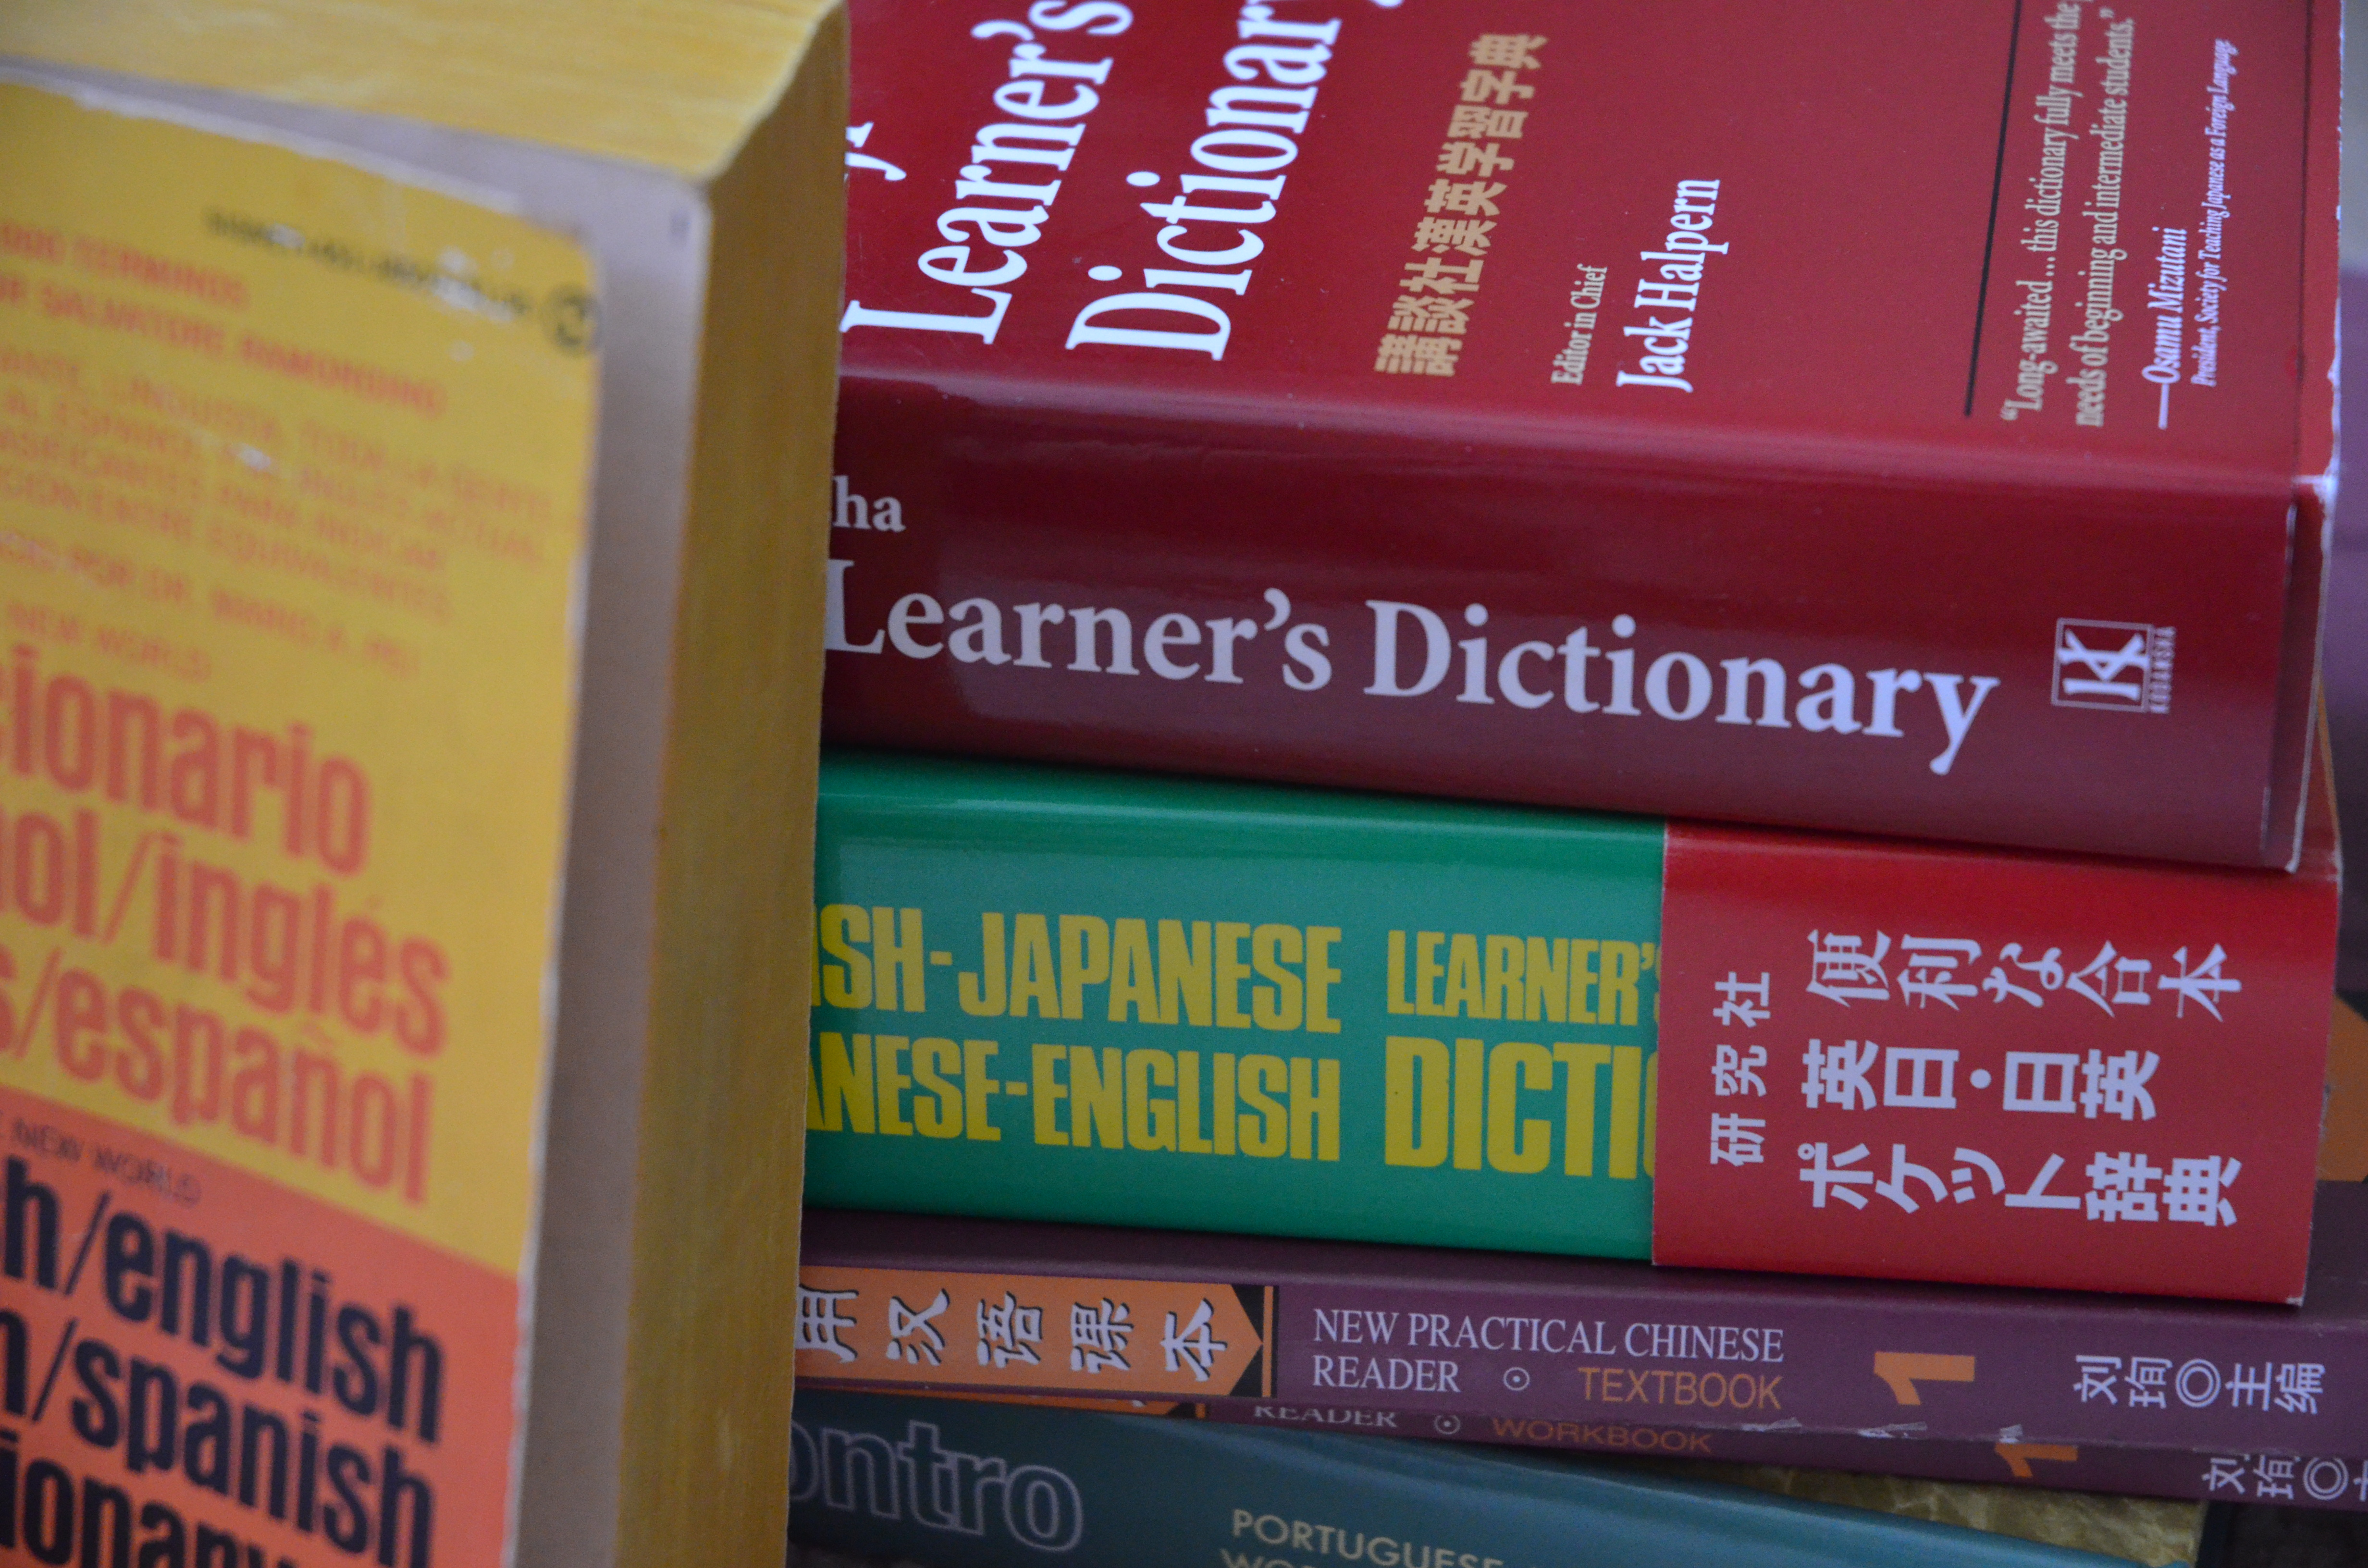 What's Your Favorite Language?